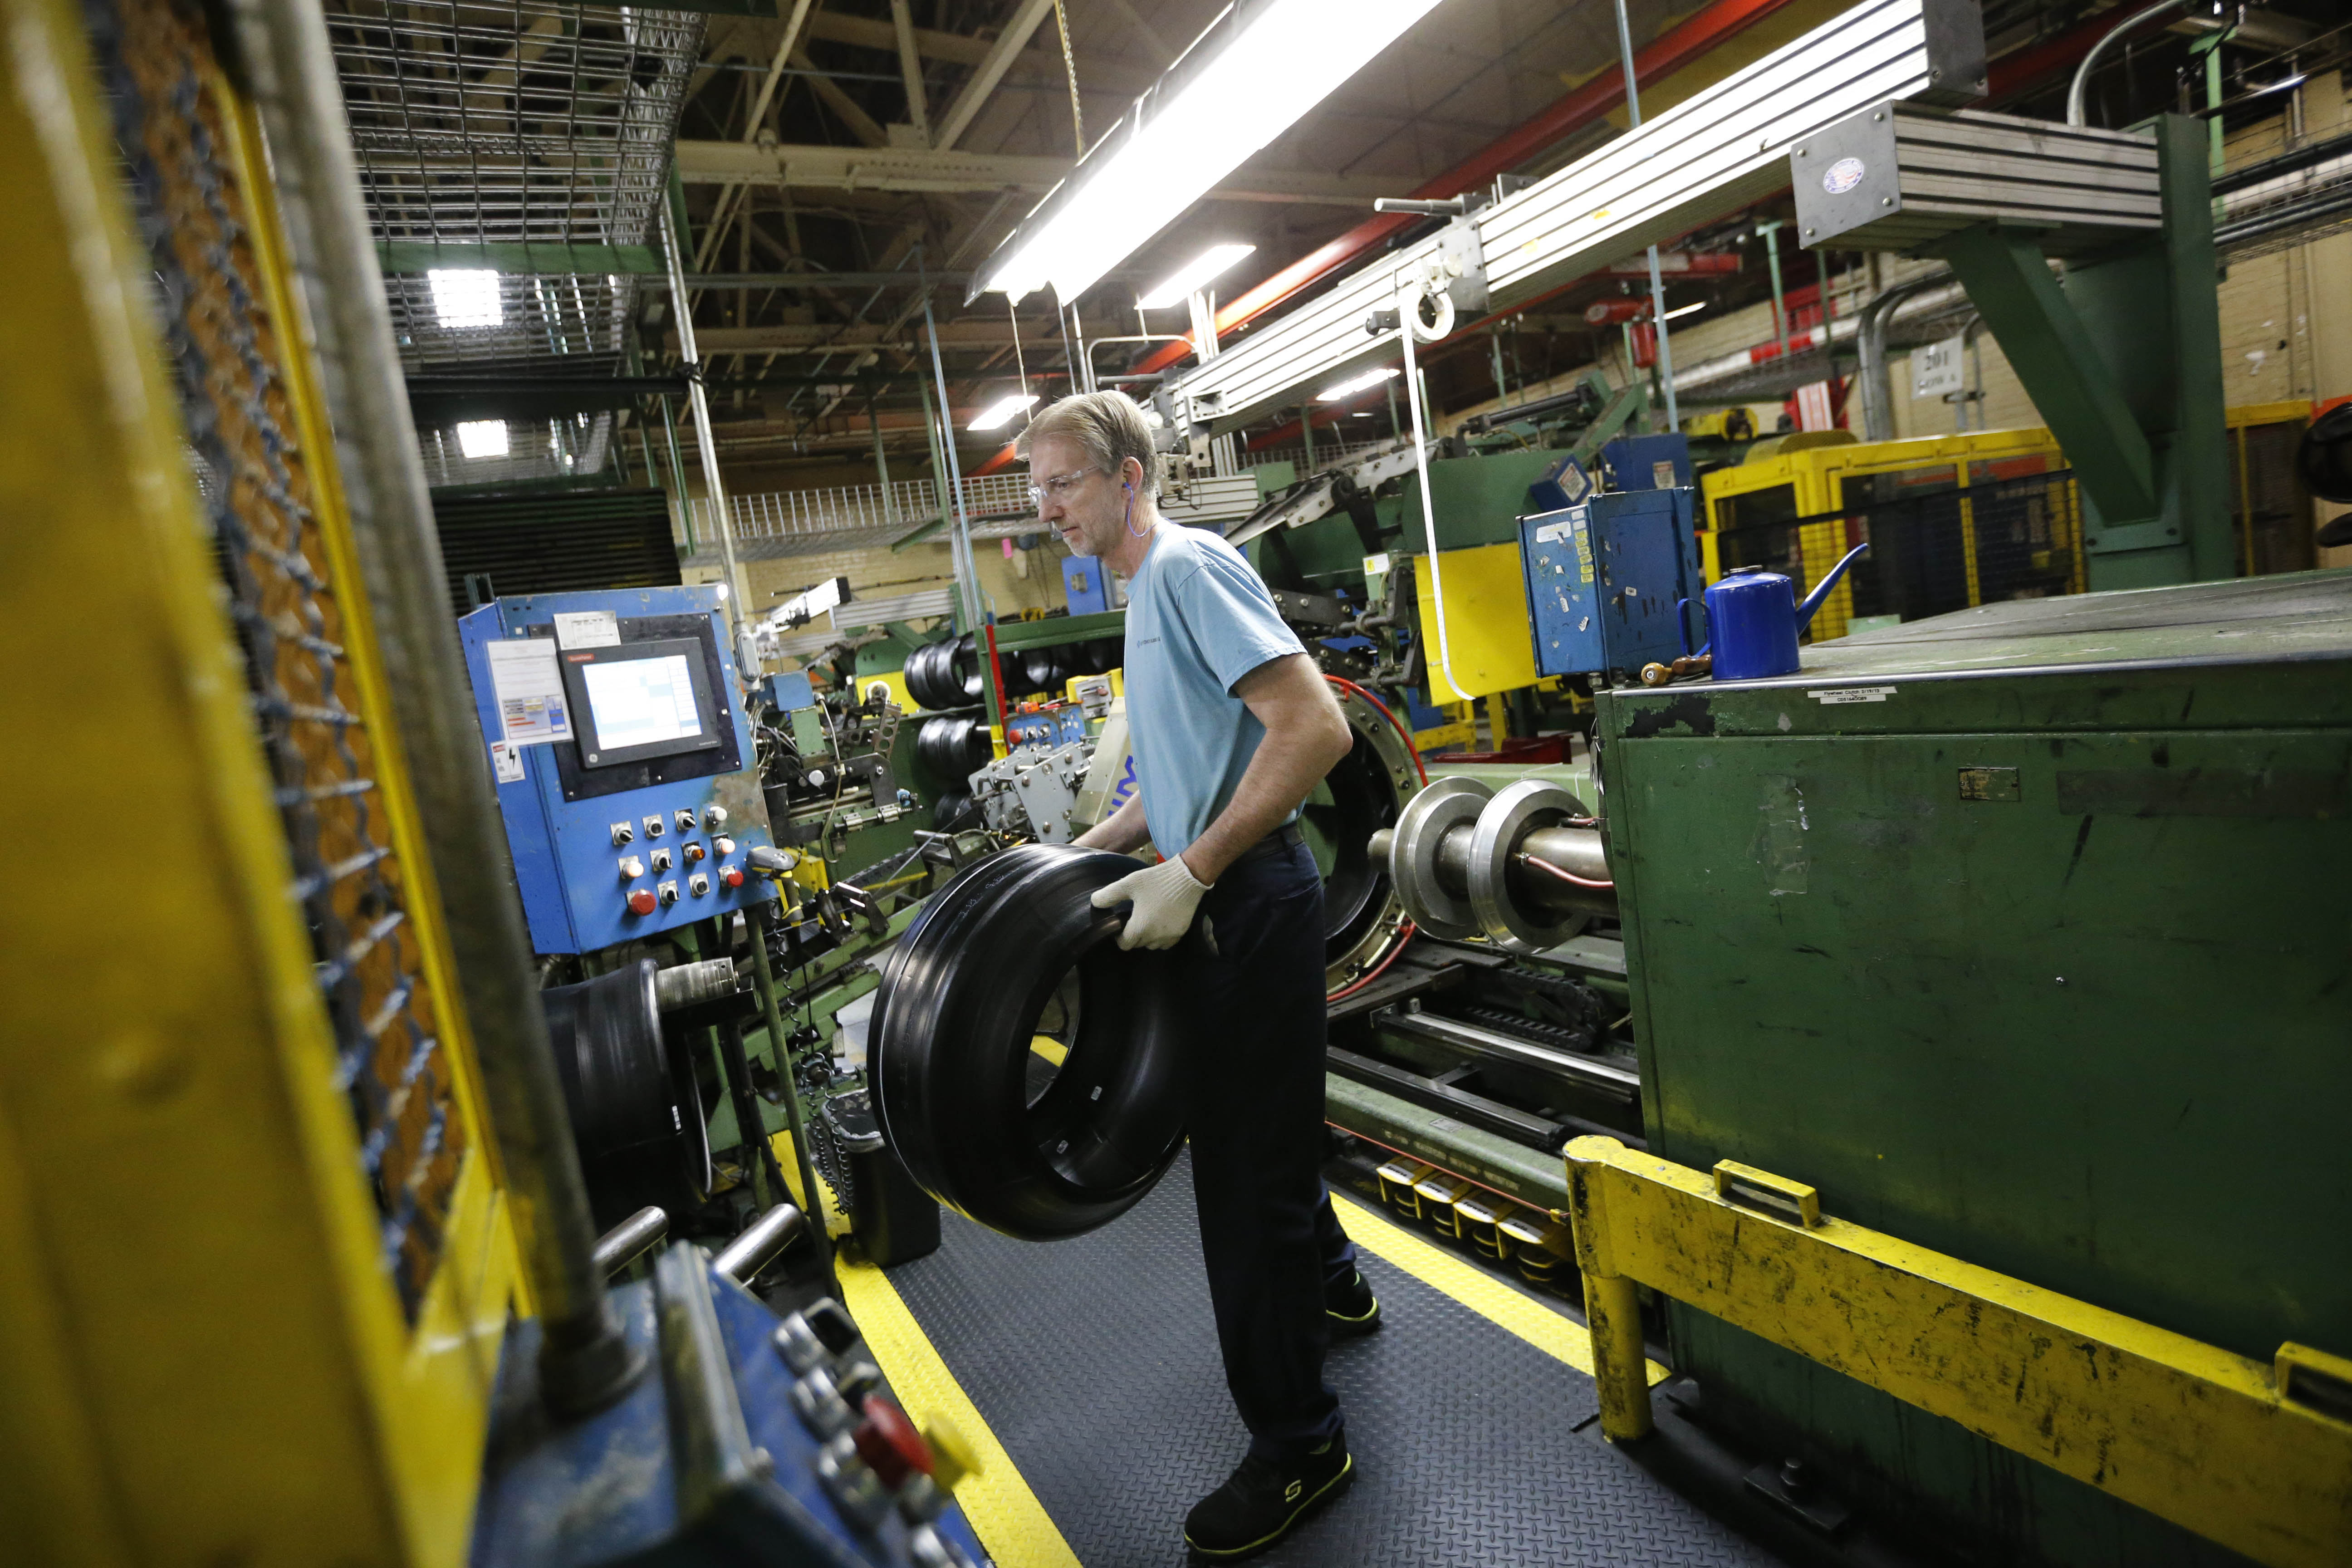 A second-stage tire builder removes a tire from a machine in the Sumitomo Rubber USA tire manufacturing plant in Tonawanda.  (Derek Gee/Buffalo News file photo)